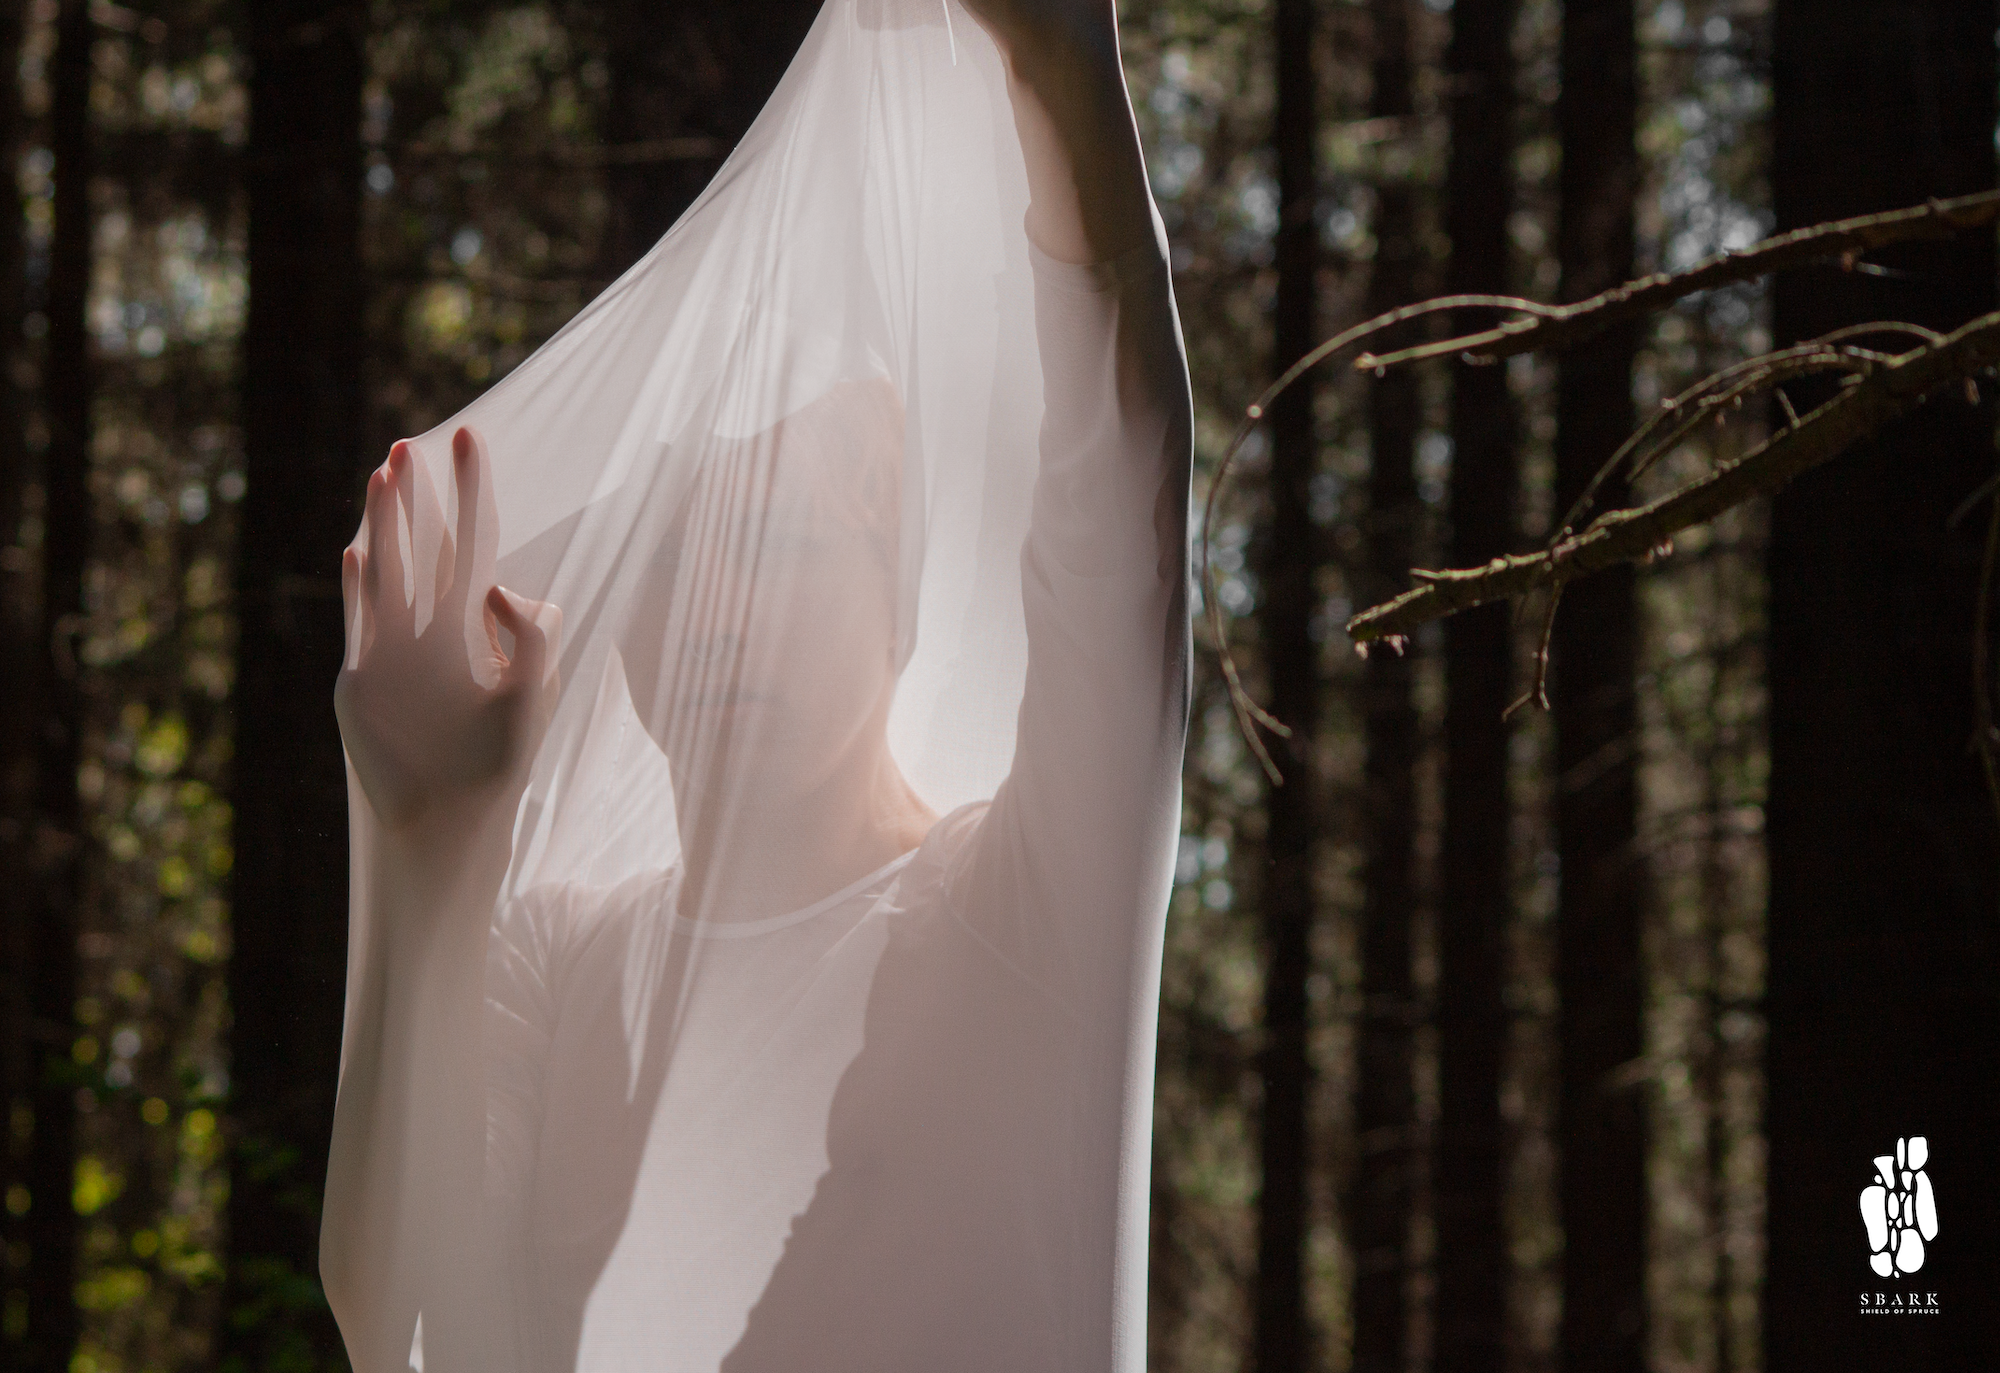 Person behind a white protective fabric in a forest